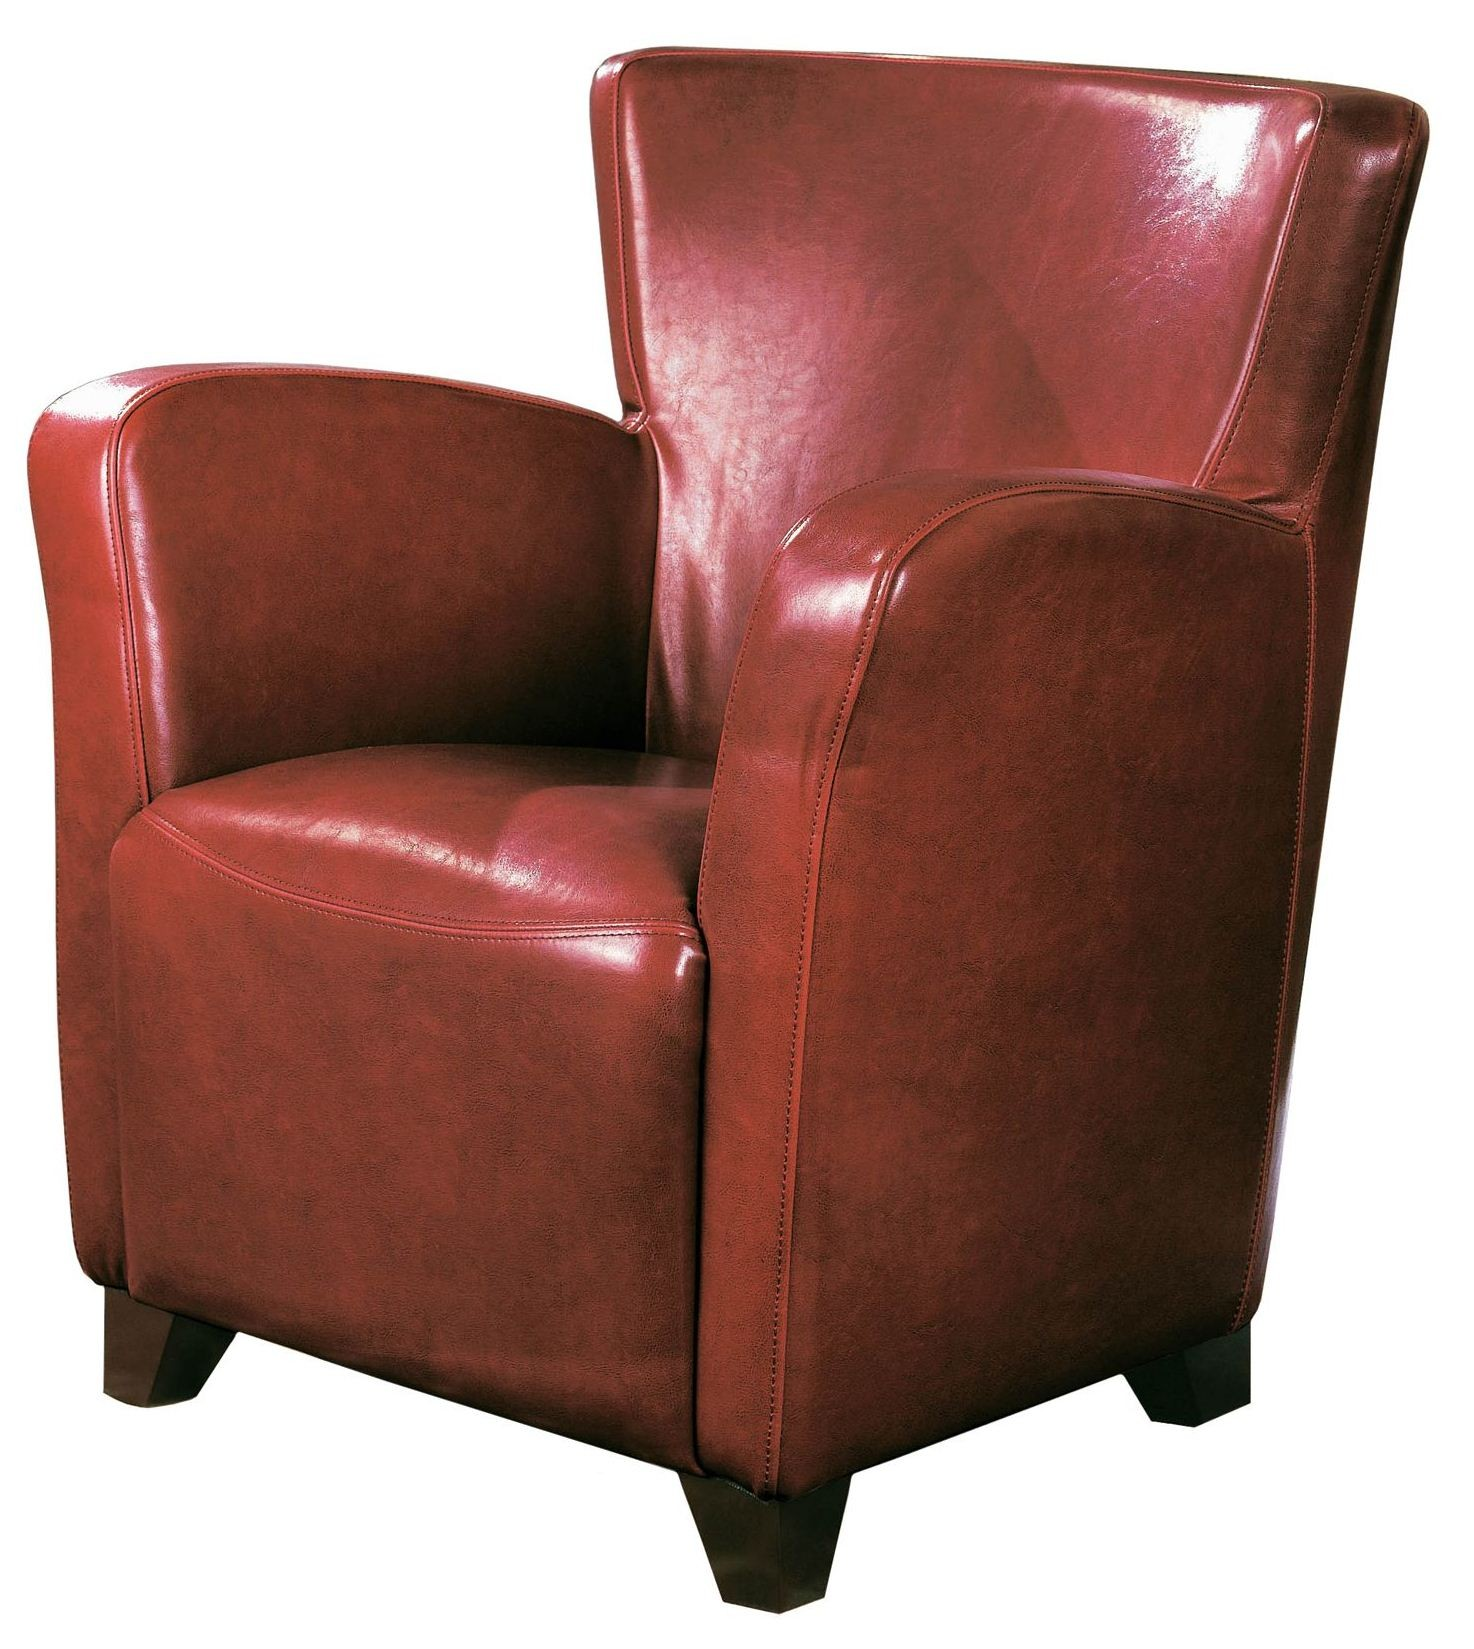 red club chair fishing reviews from monarch 8068 coleman furniture